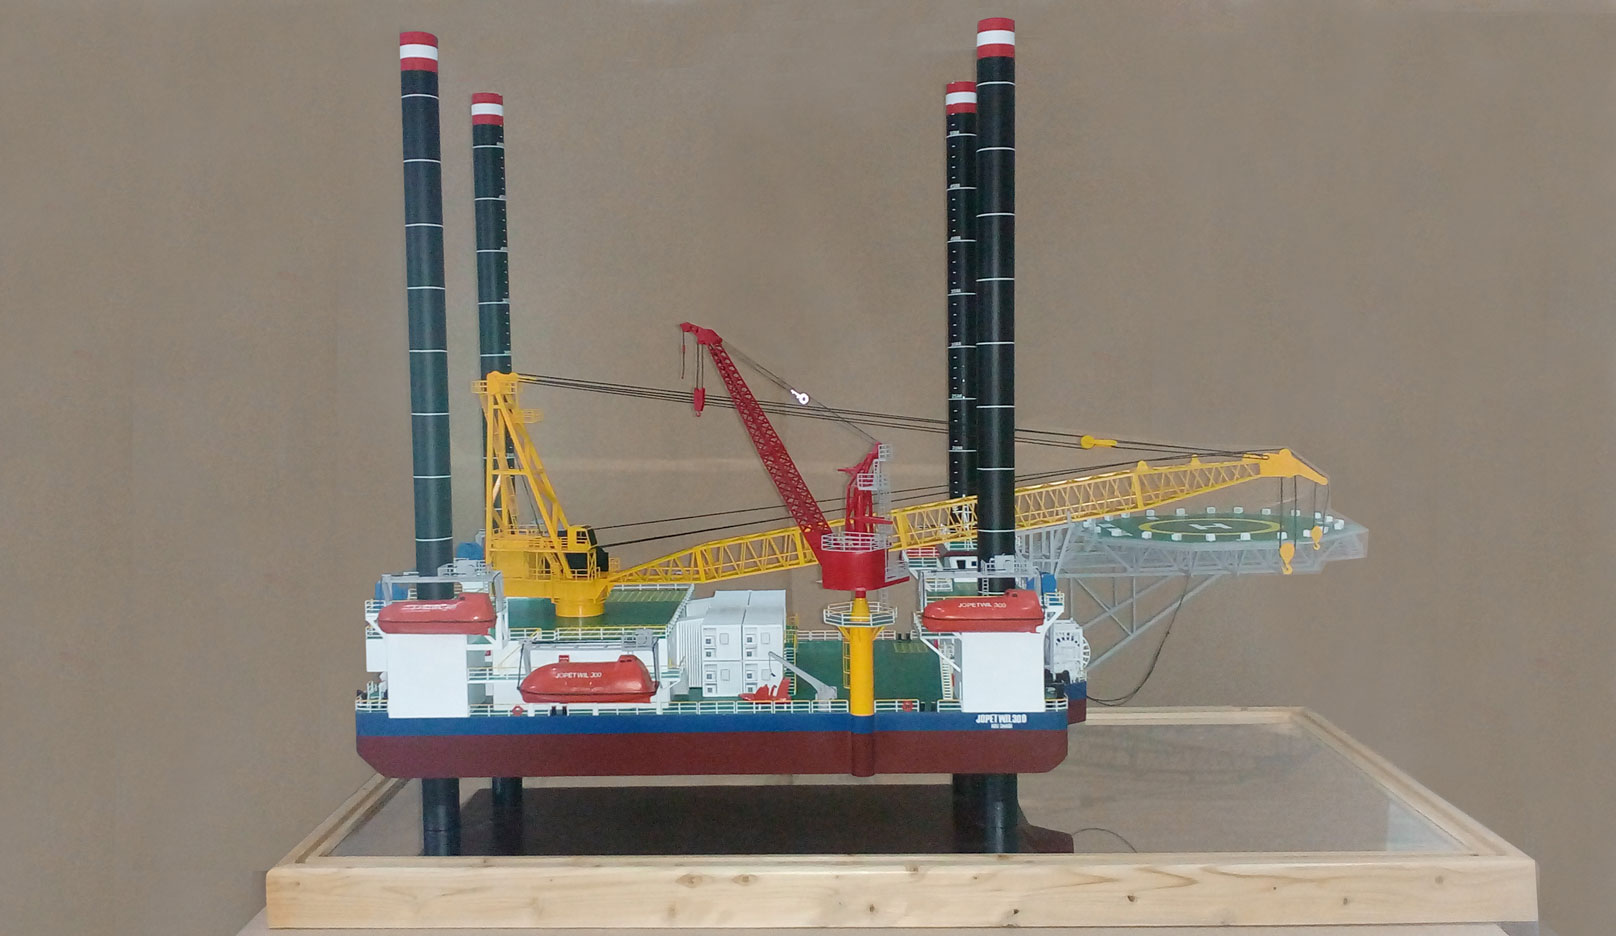 Scale model -  Ship - barge - Jopetwil 300